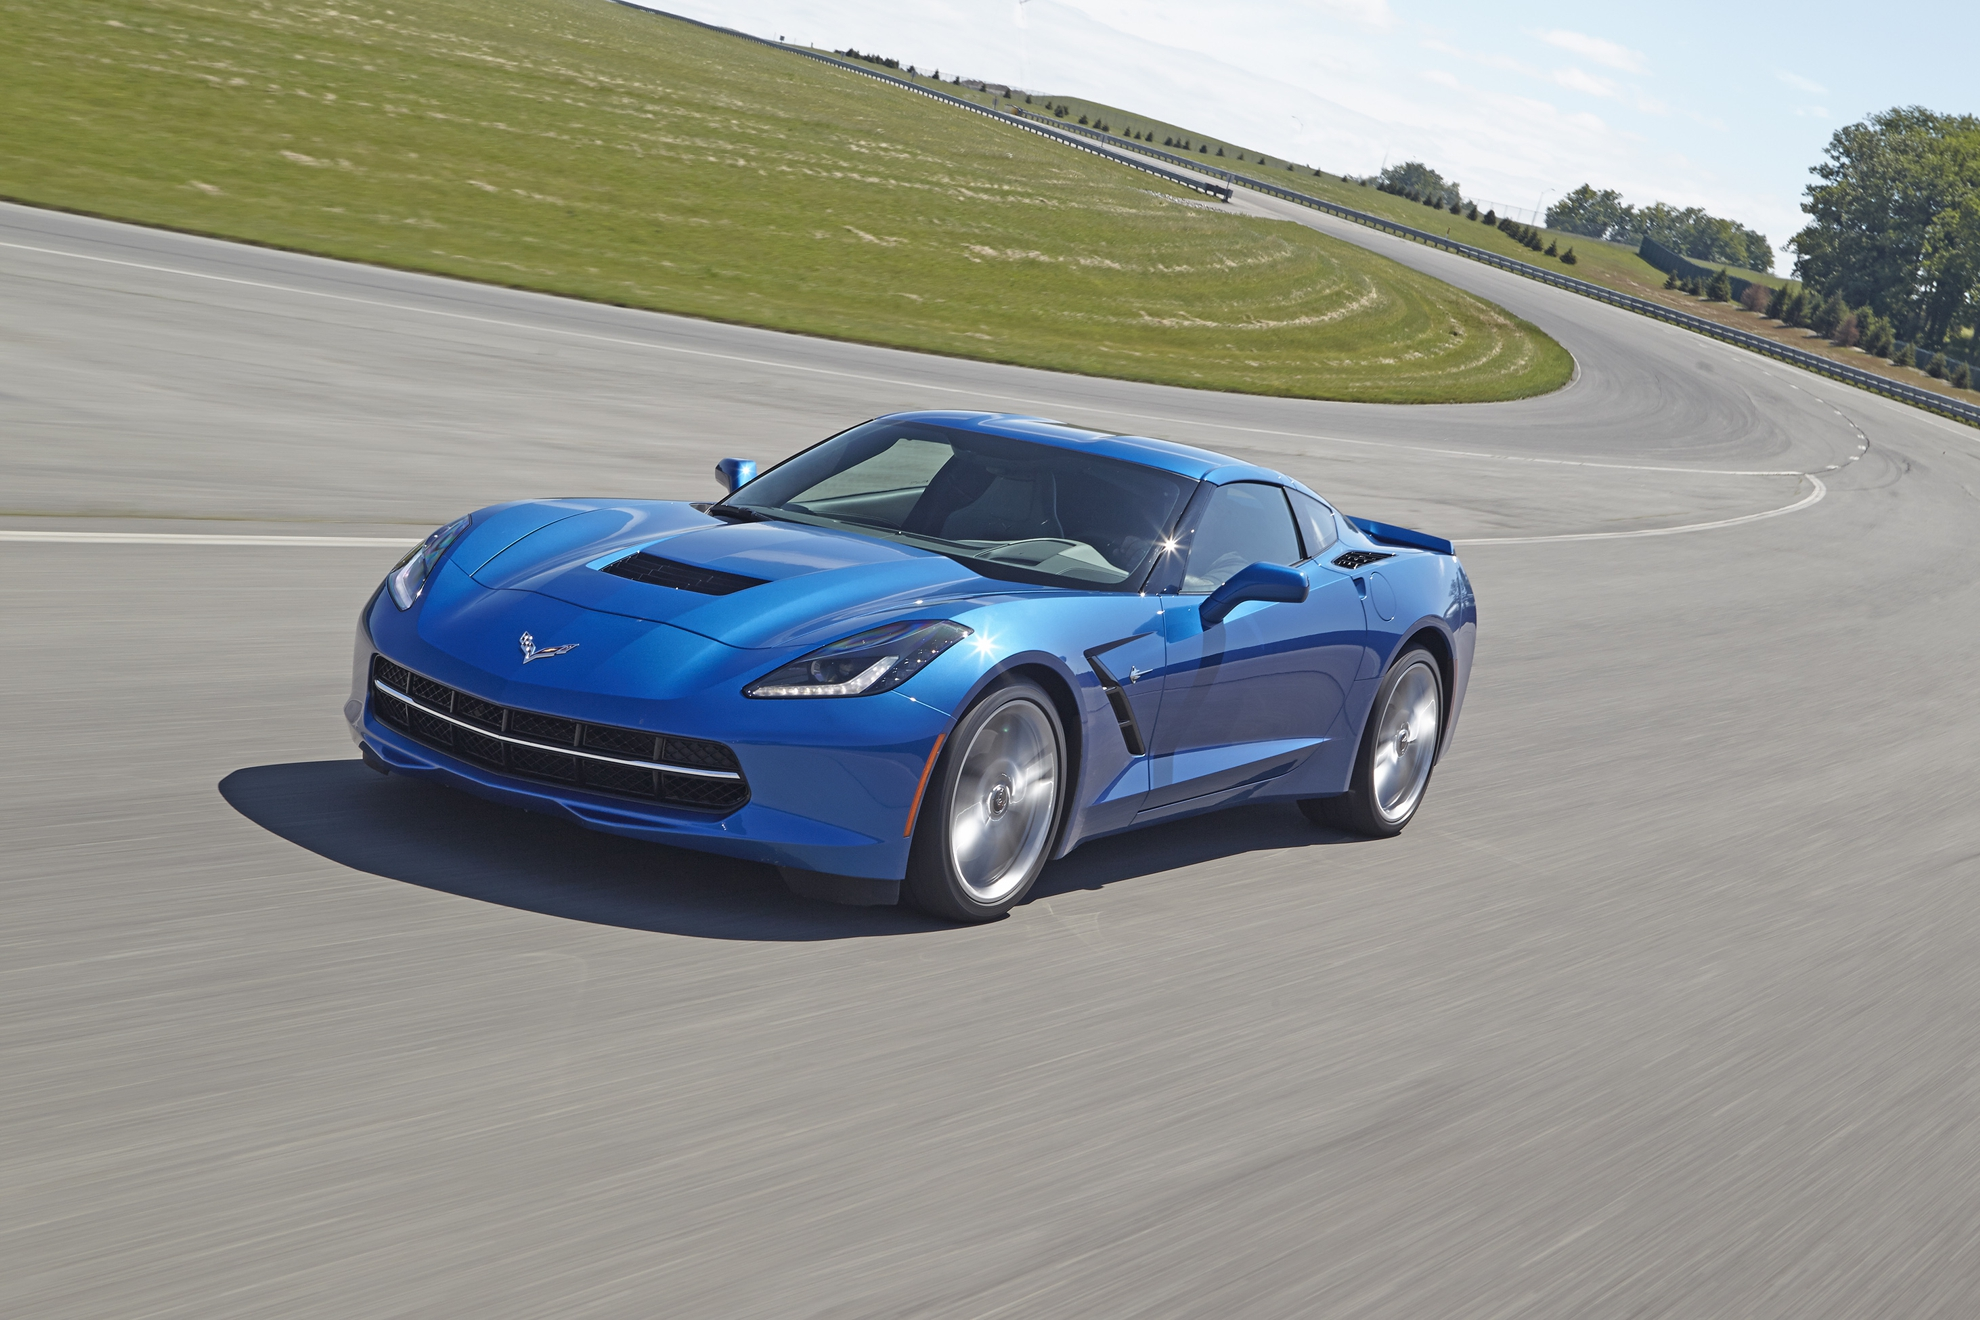 2015 corvette stingray 8 speed automatic makes corvette faster. Cars Review. Best American Auto & Cars Review